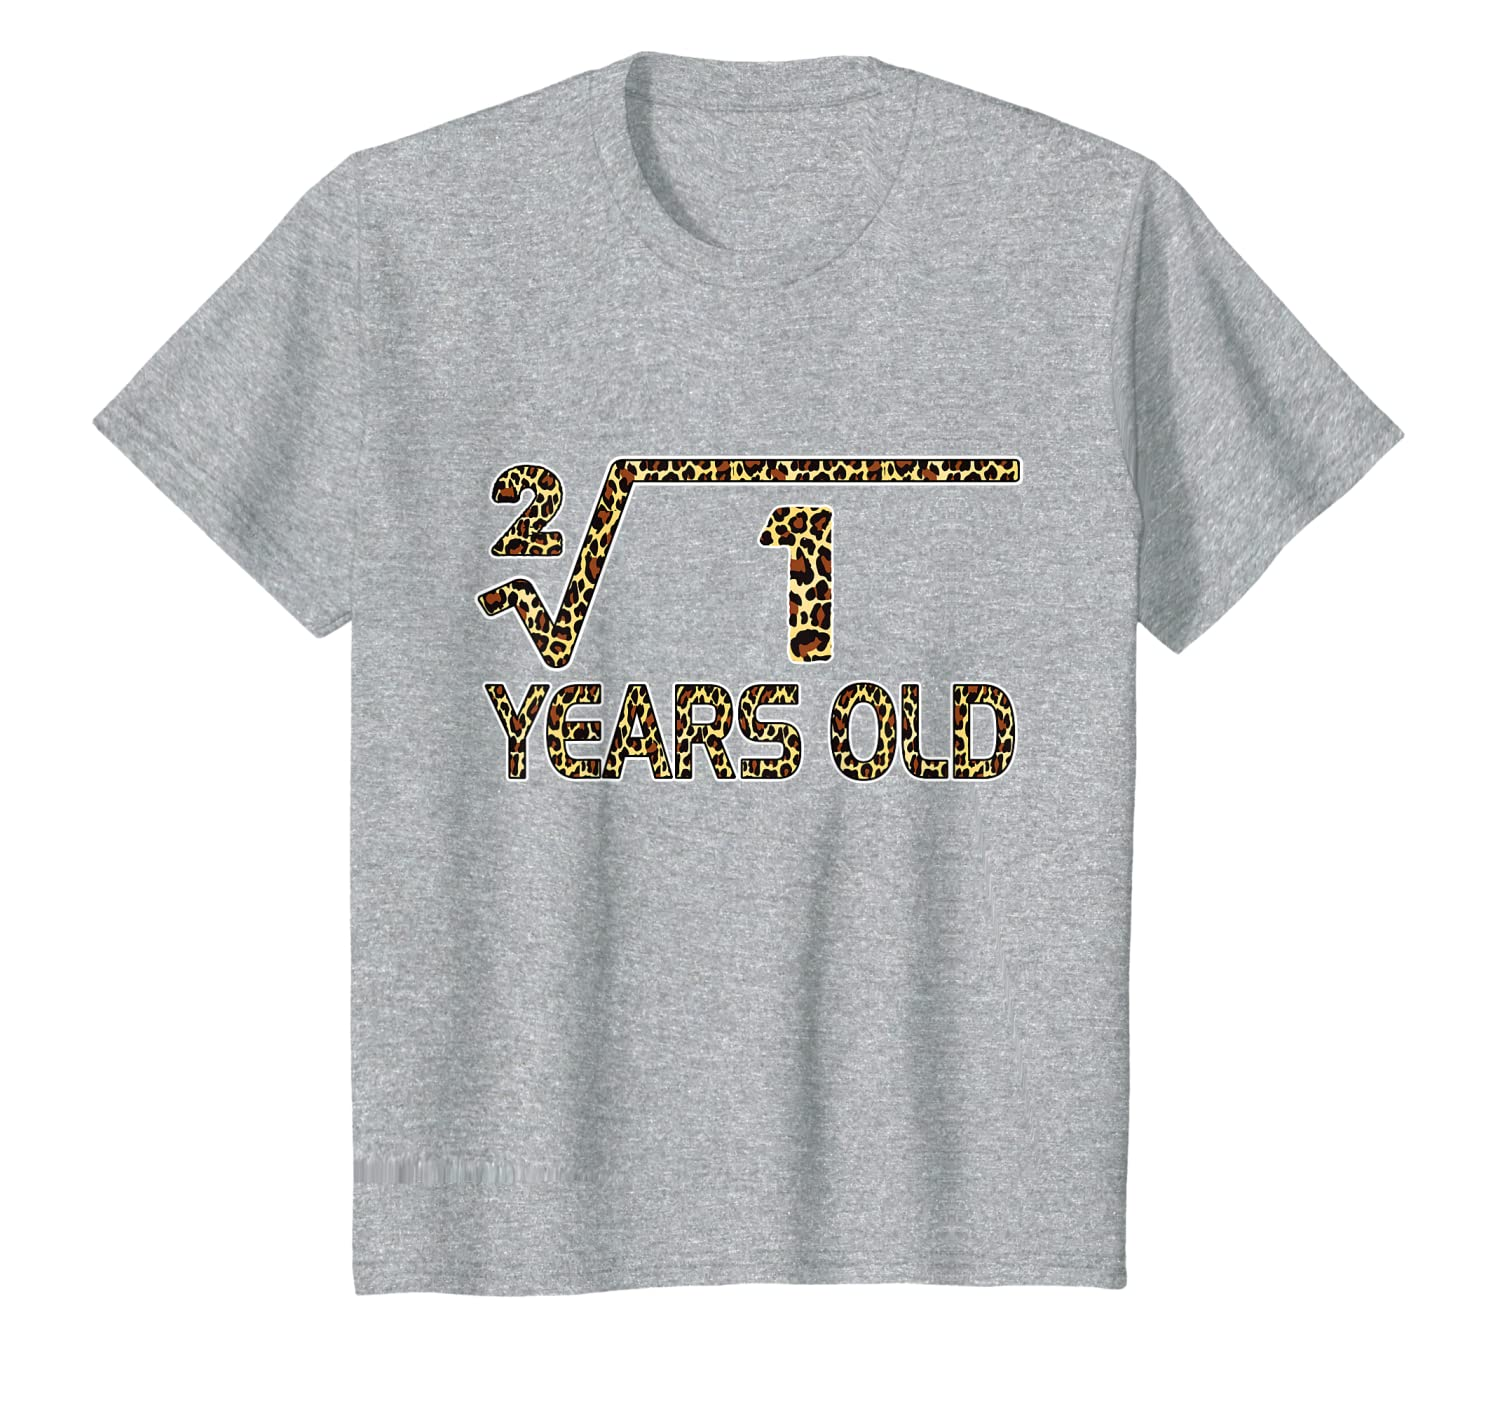 Kids Square Root of 1 1st Birthday New Born Baby Girl Boy Outfit T-Shirt